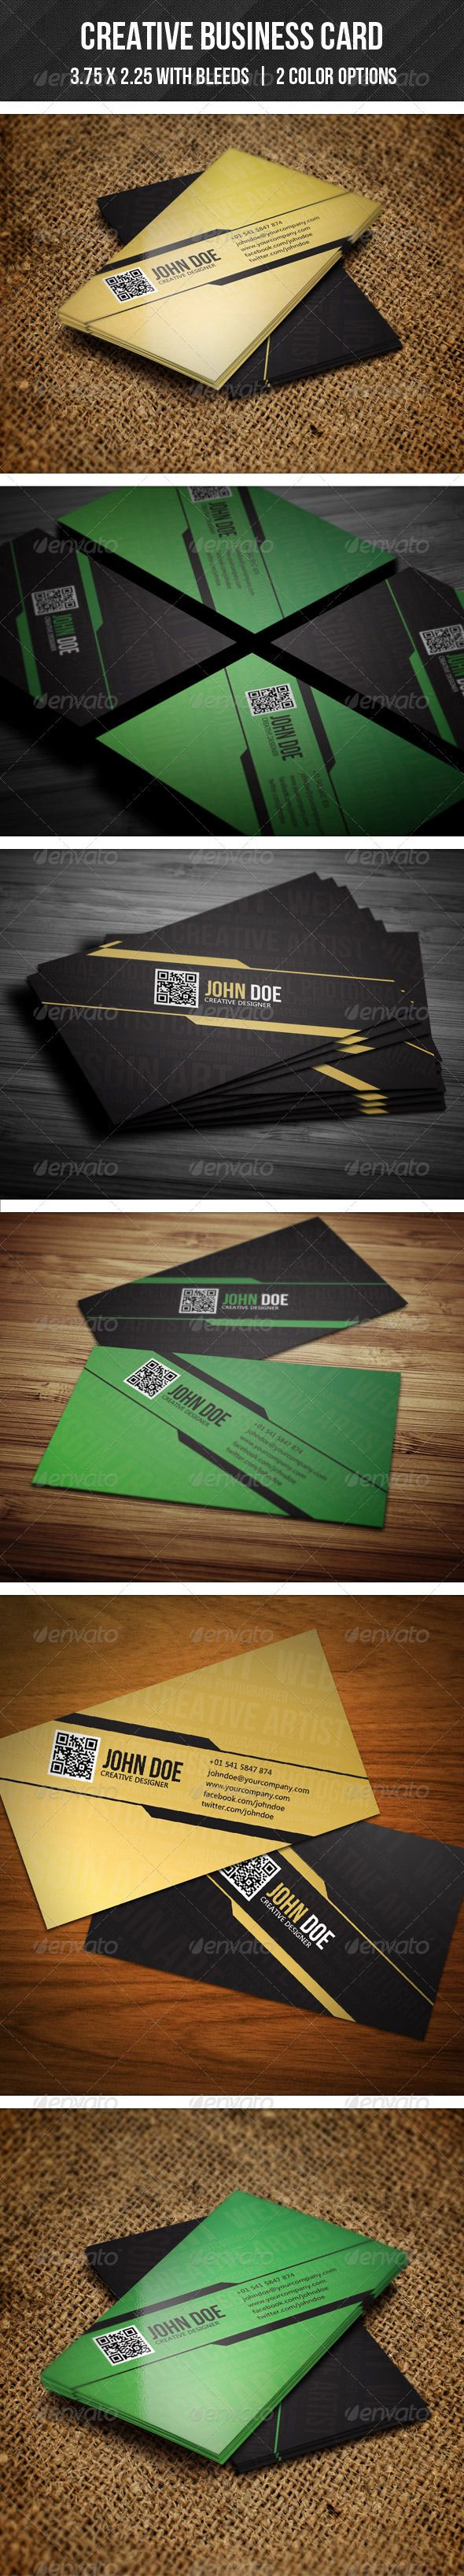 Inspirational images of leaf shaped business cards business 95 best print templates images on pinterest 95 best print templates images on pinterest from leaf shaped business cards magicingreecefo Choice Image